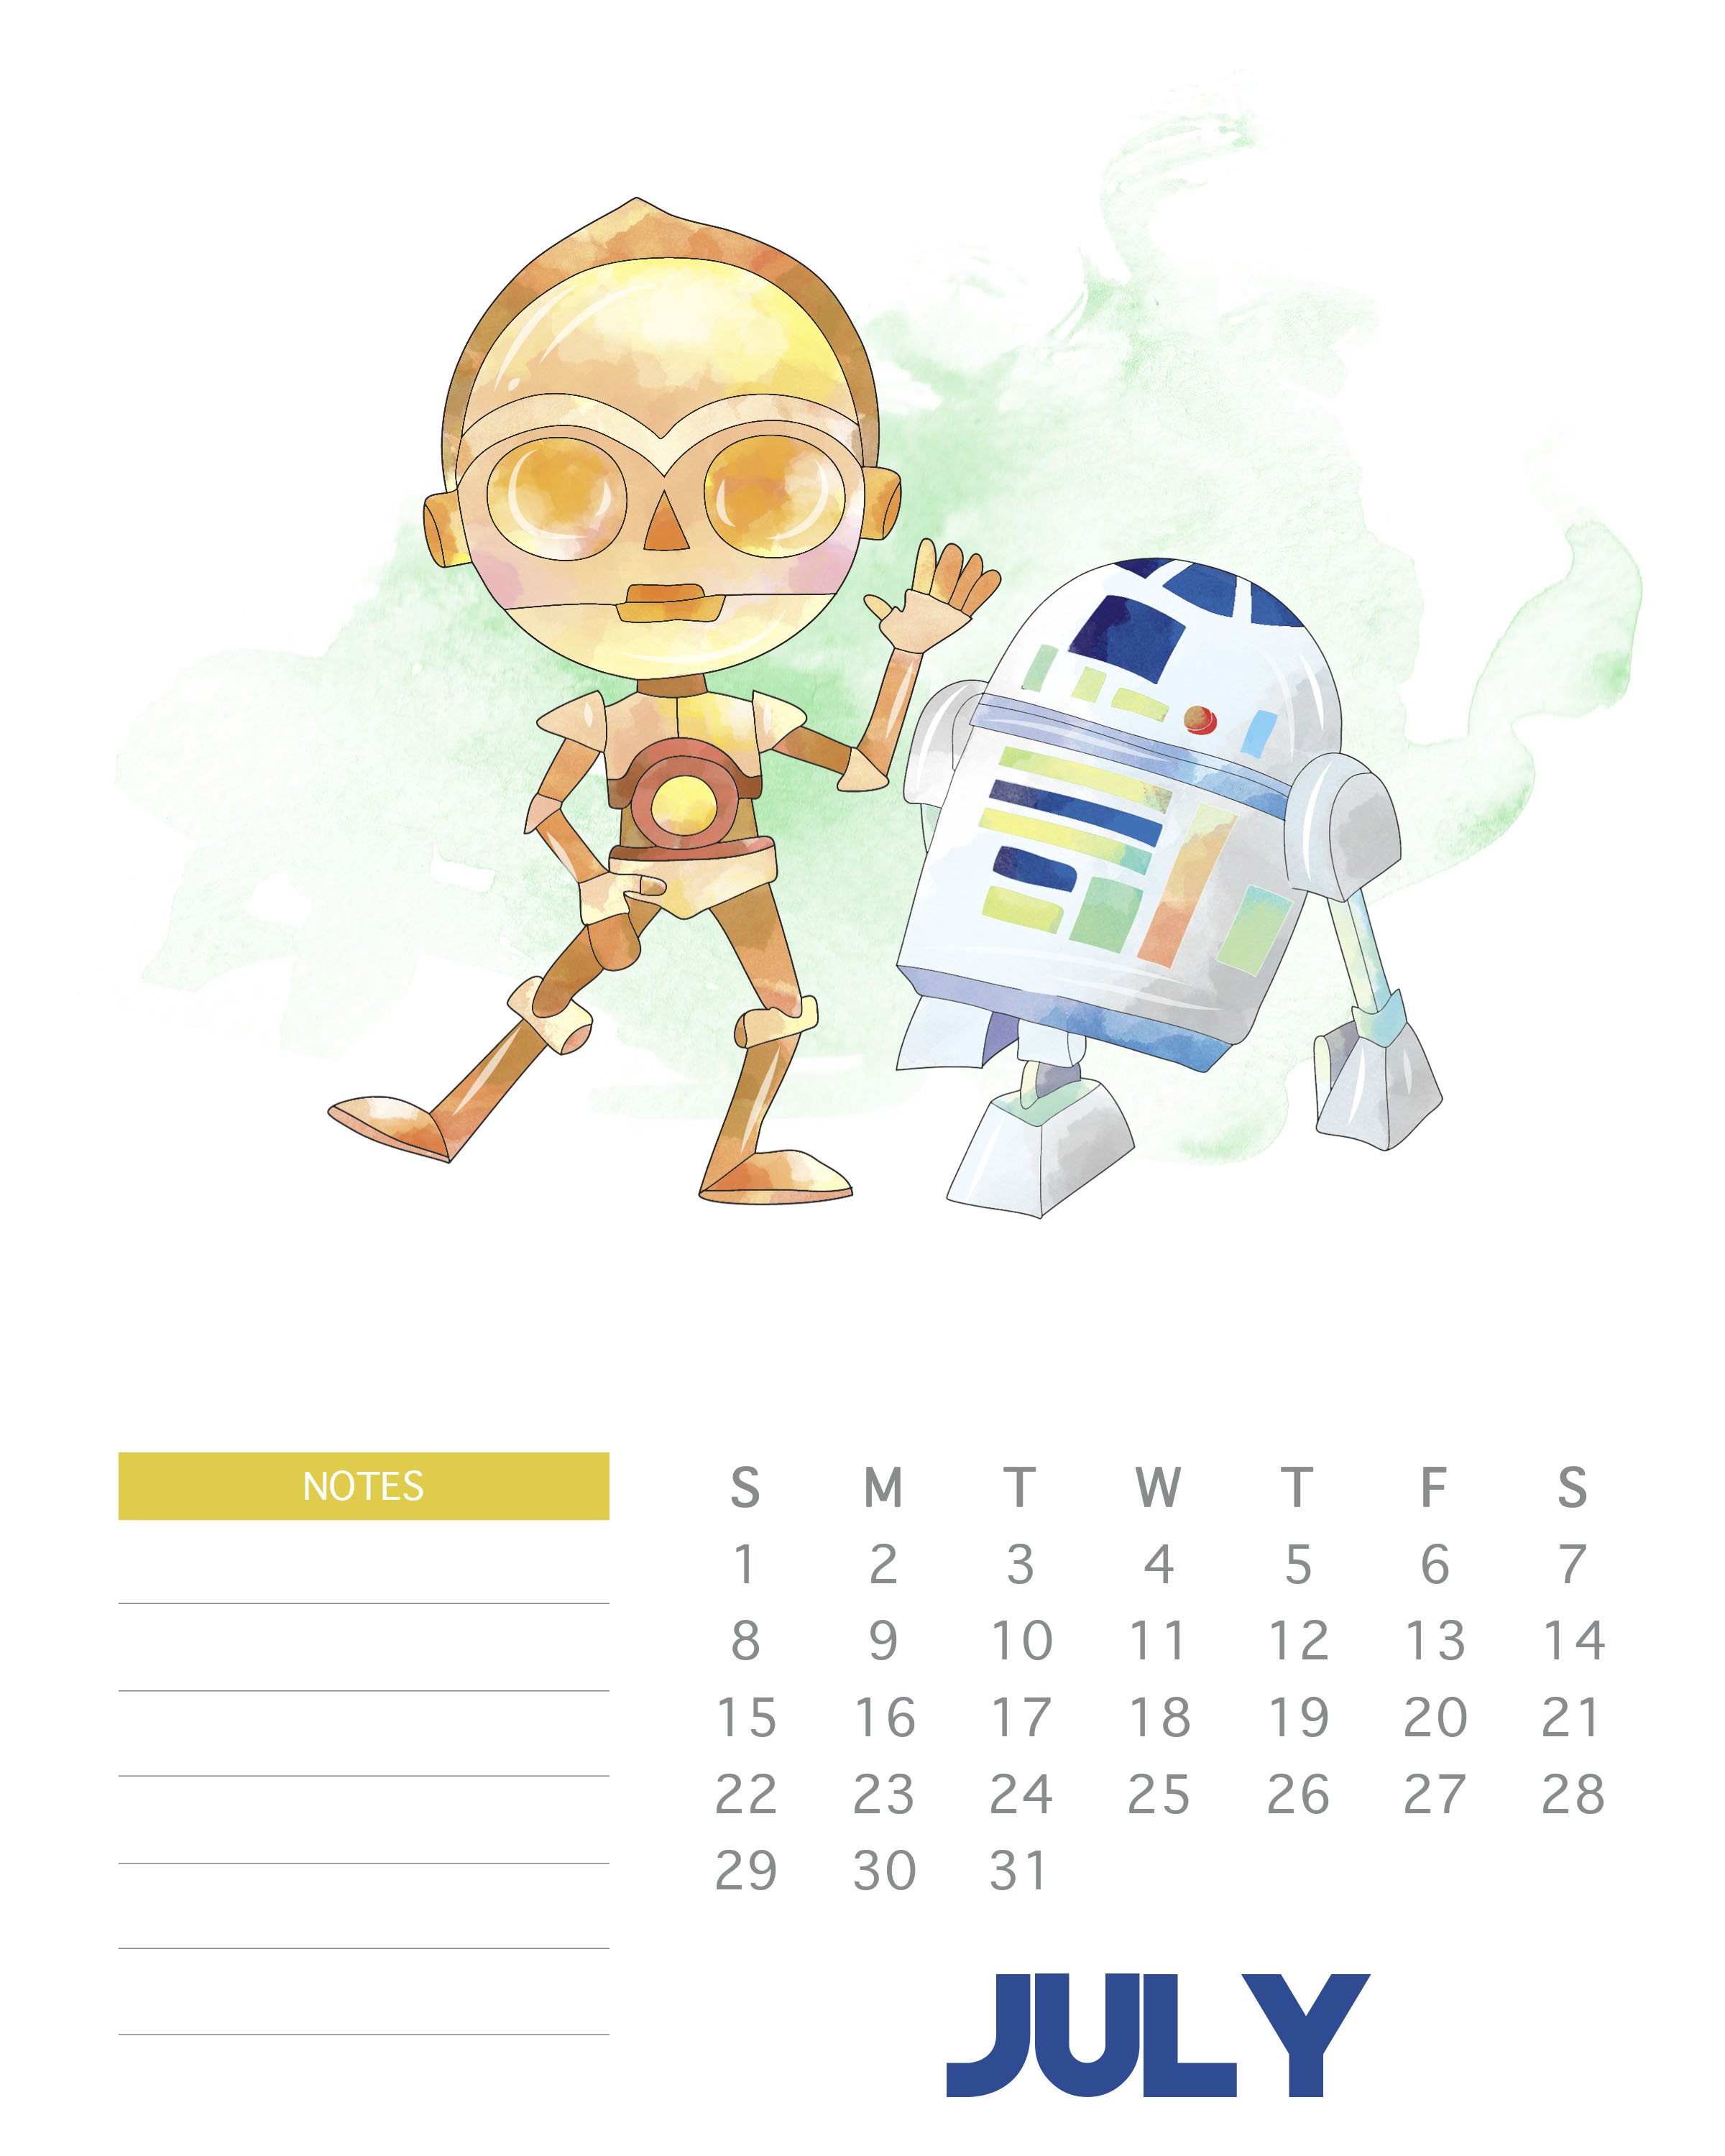 July 2018 Star Wars Calendar Template